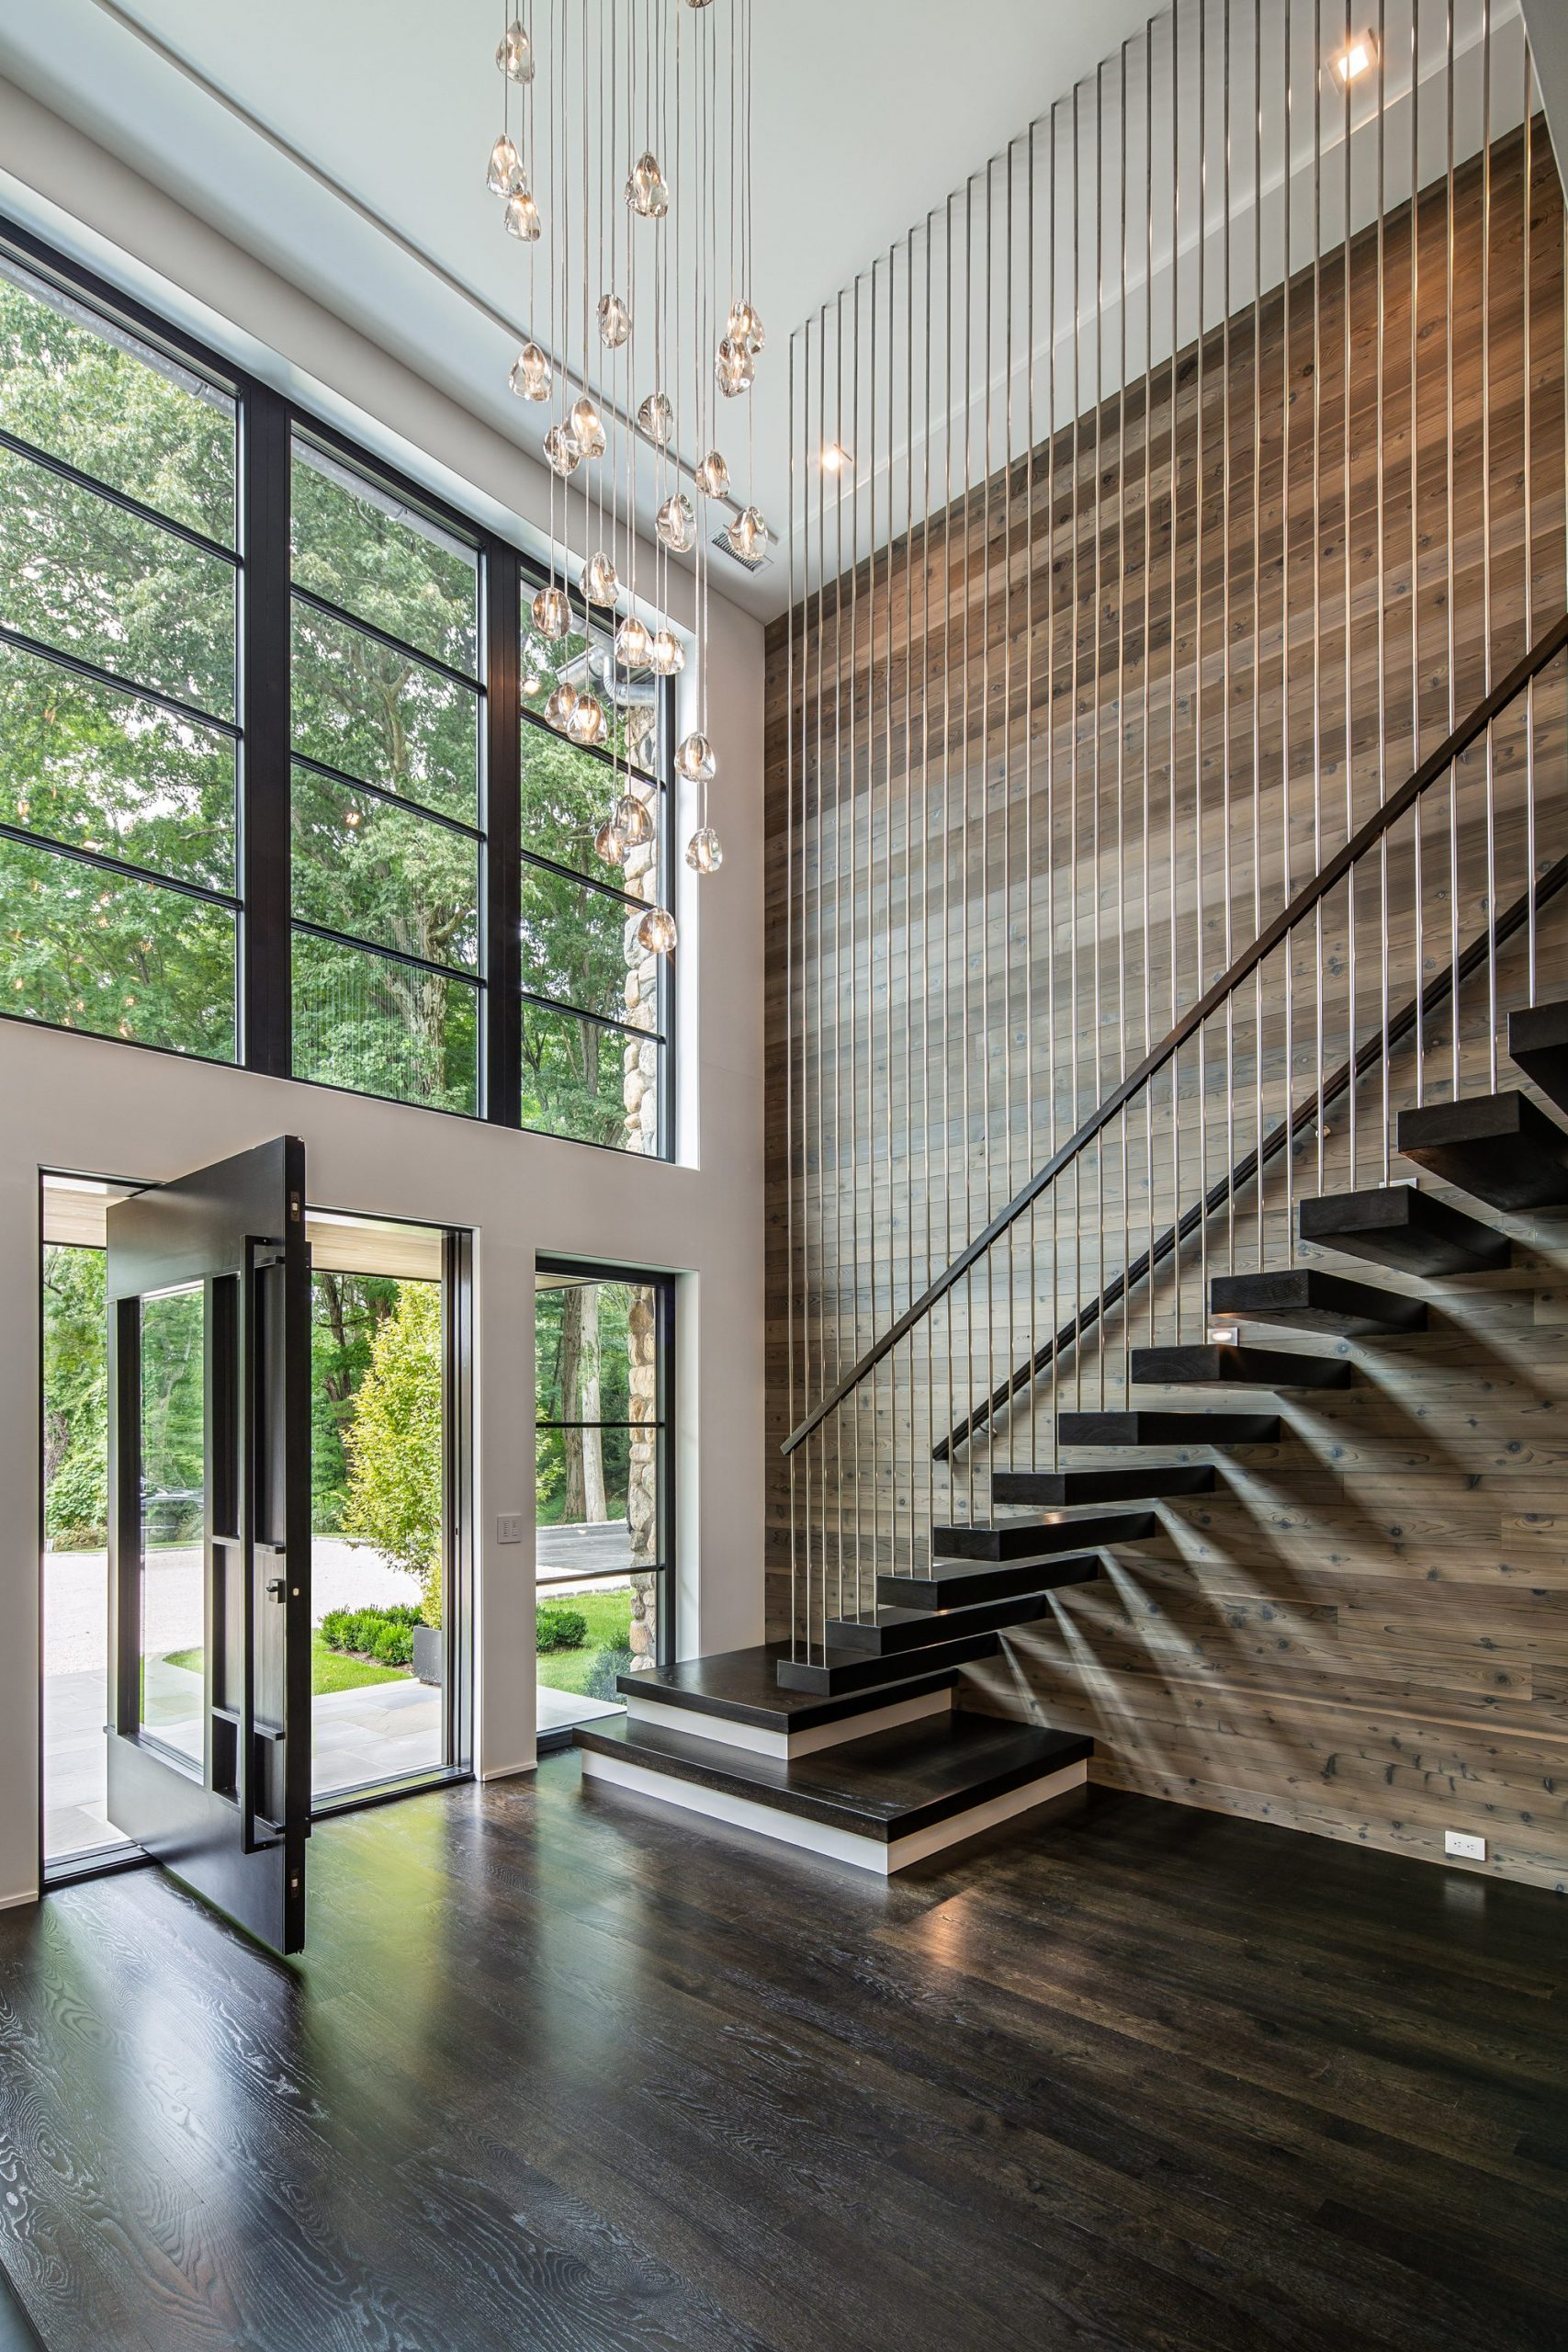 Modern home with a floating staircase built into the wall with tread to ceiling metal balusters.